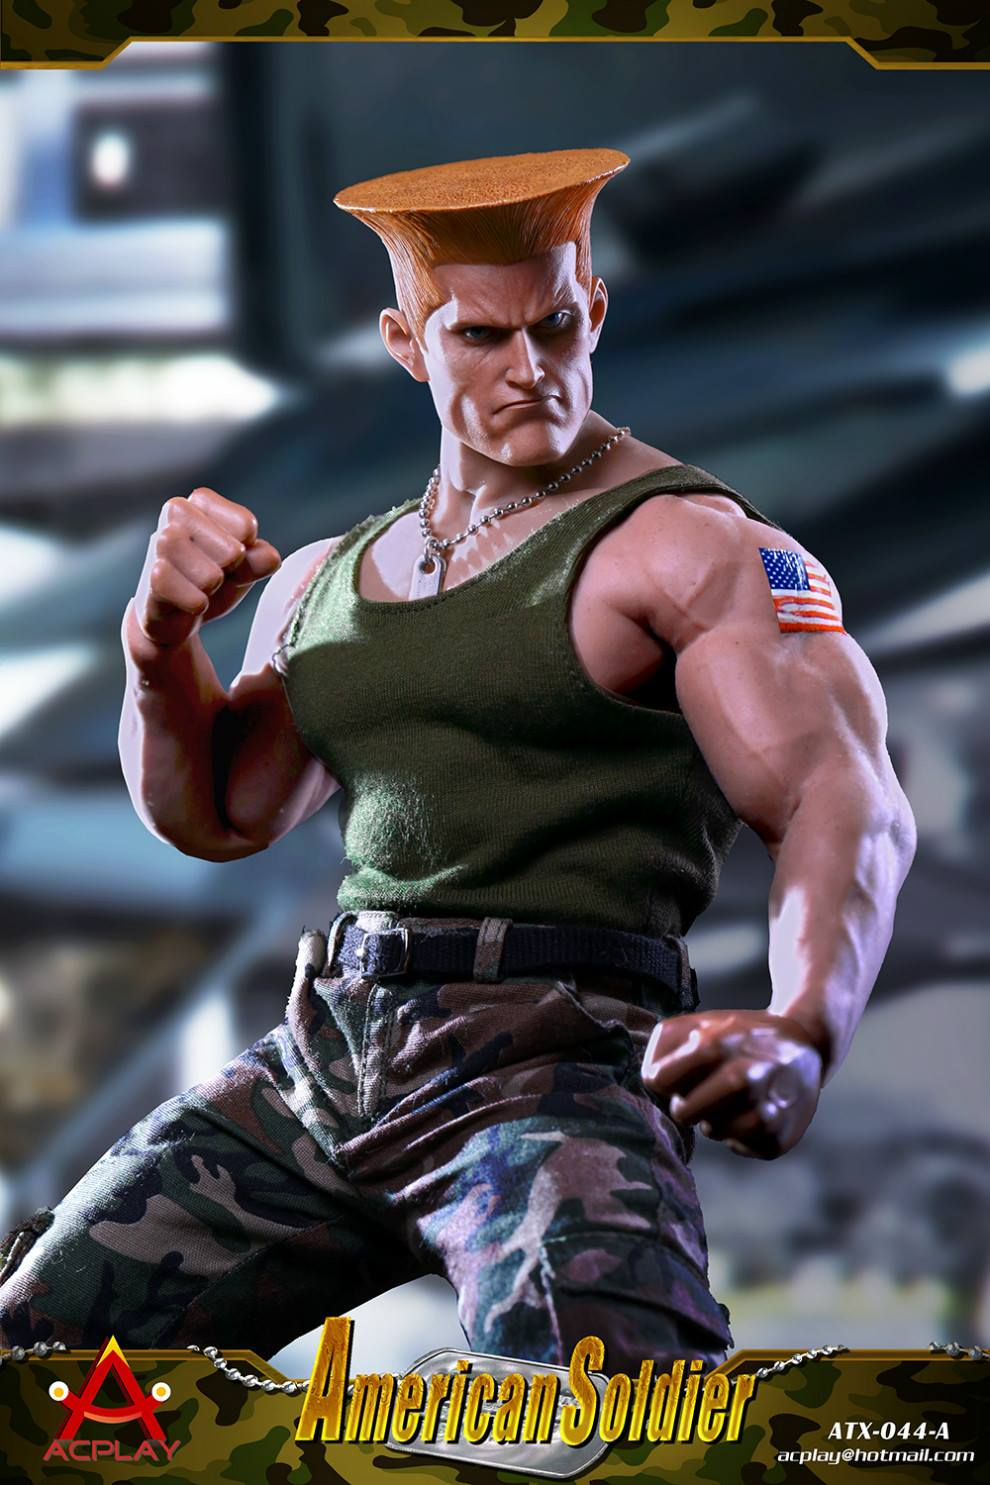 Special effects 1//6 ACPLAY ATX044 Street Bruiser American soldier set Guile